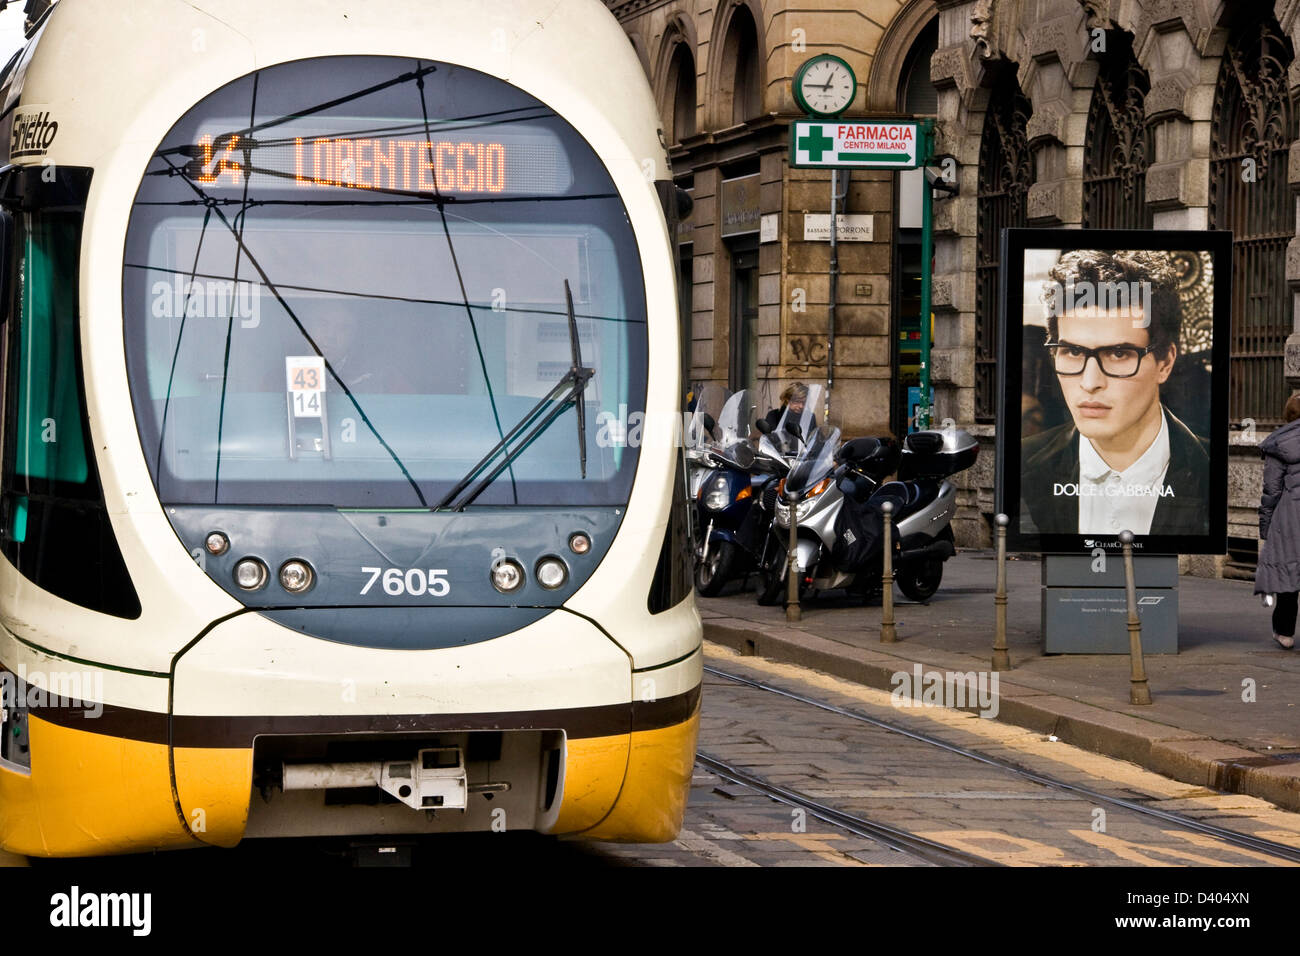 Street scene with modern electric tram passing Dolce & Gabbana advert Milan Lombardy Italy Europe - Stock Image